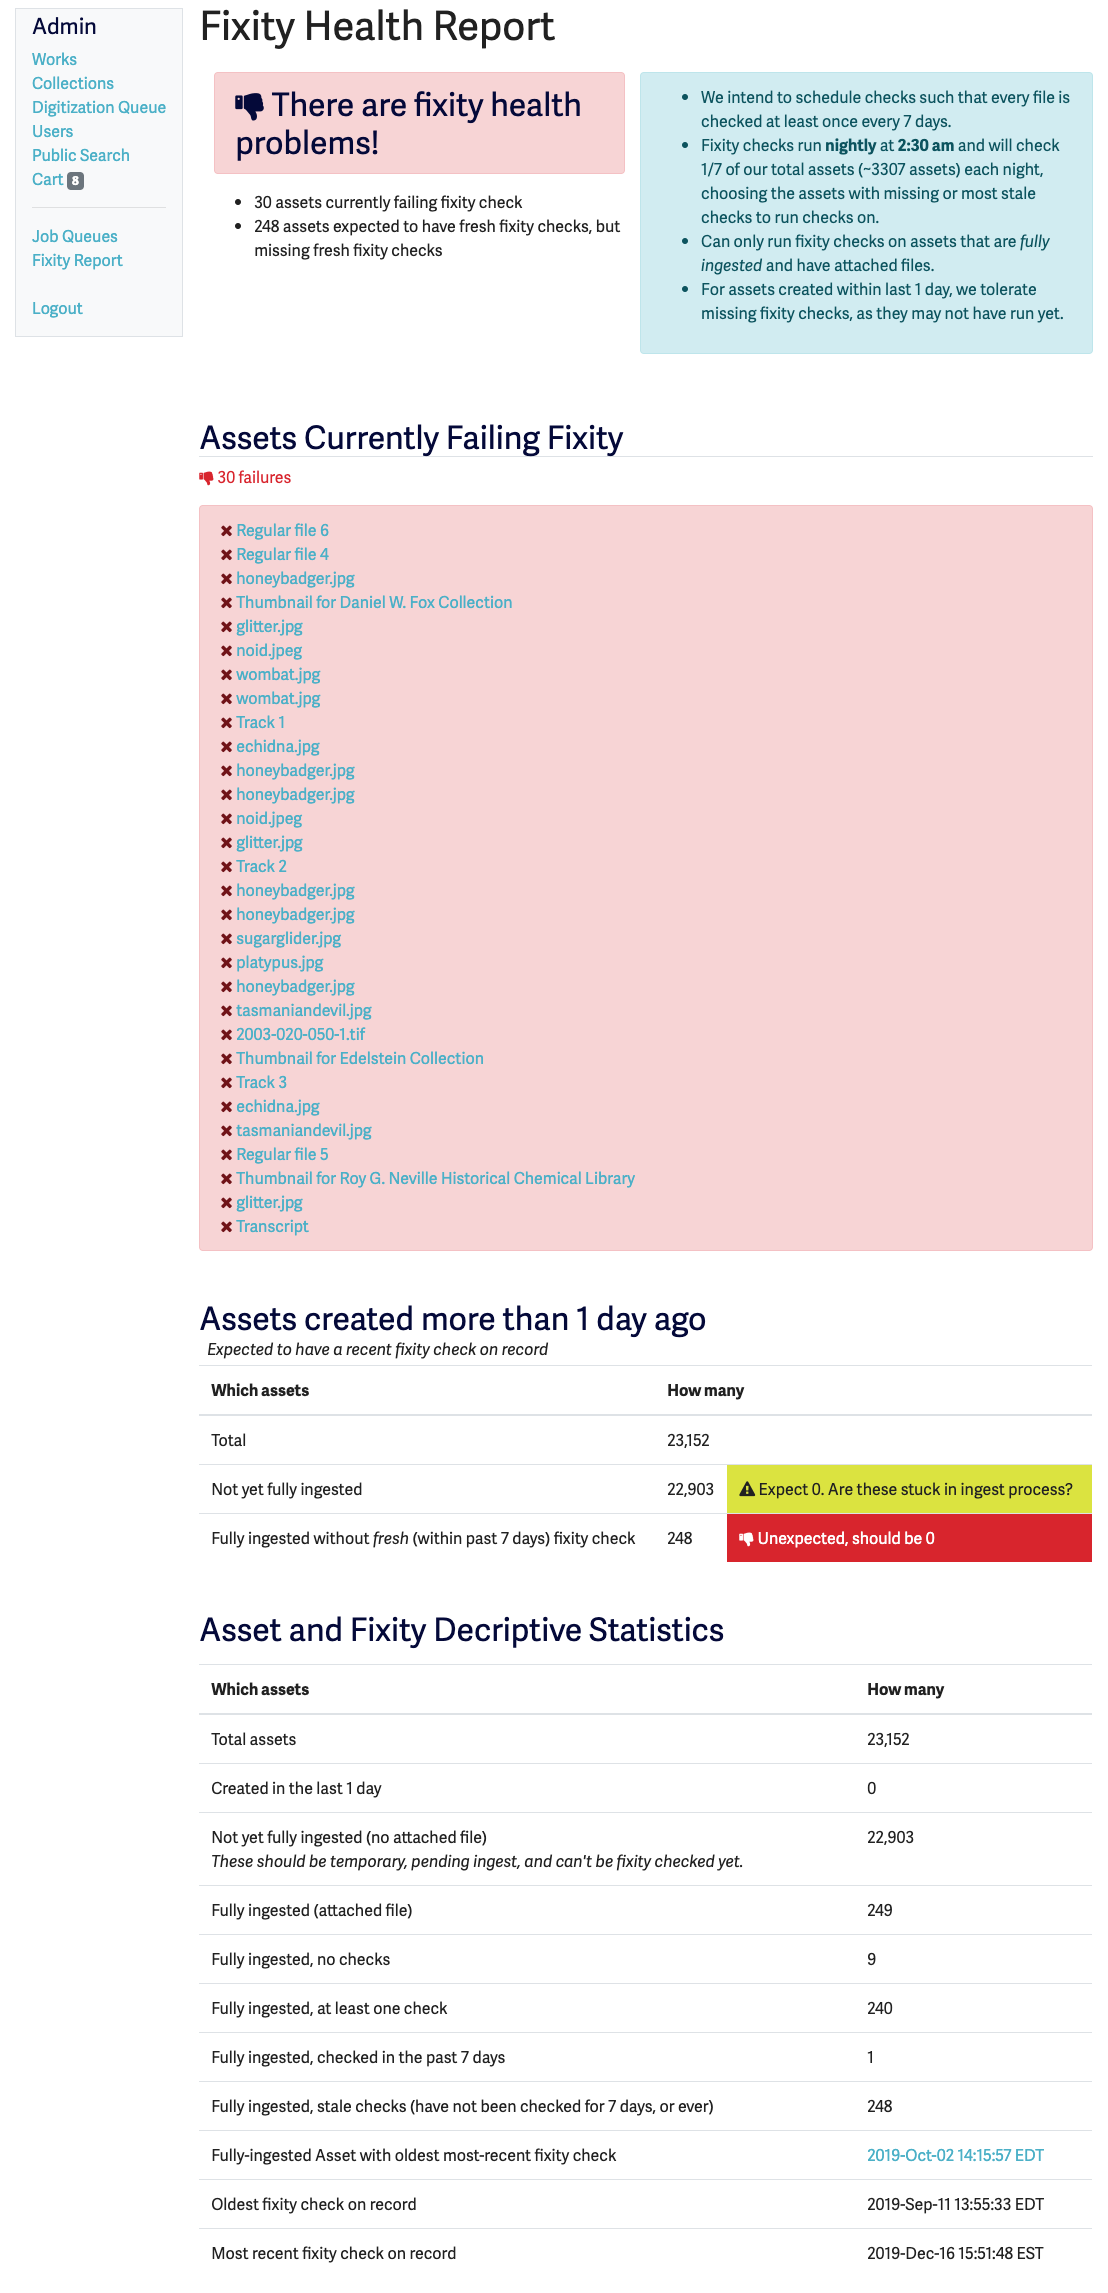 screencapture-localhost-3000-admin-fixity-report-2019-12-16-16_08_00.png